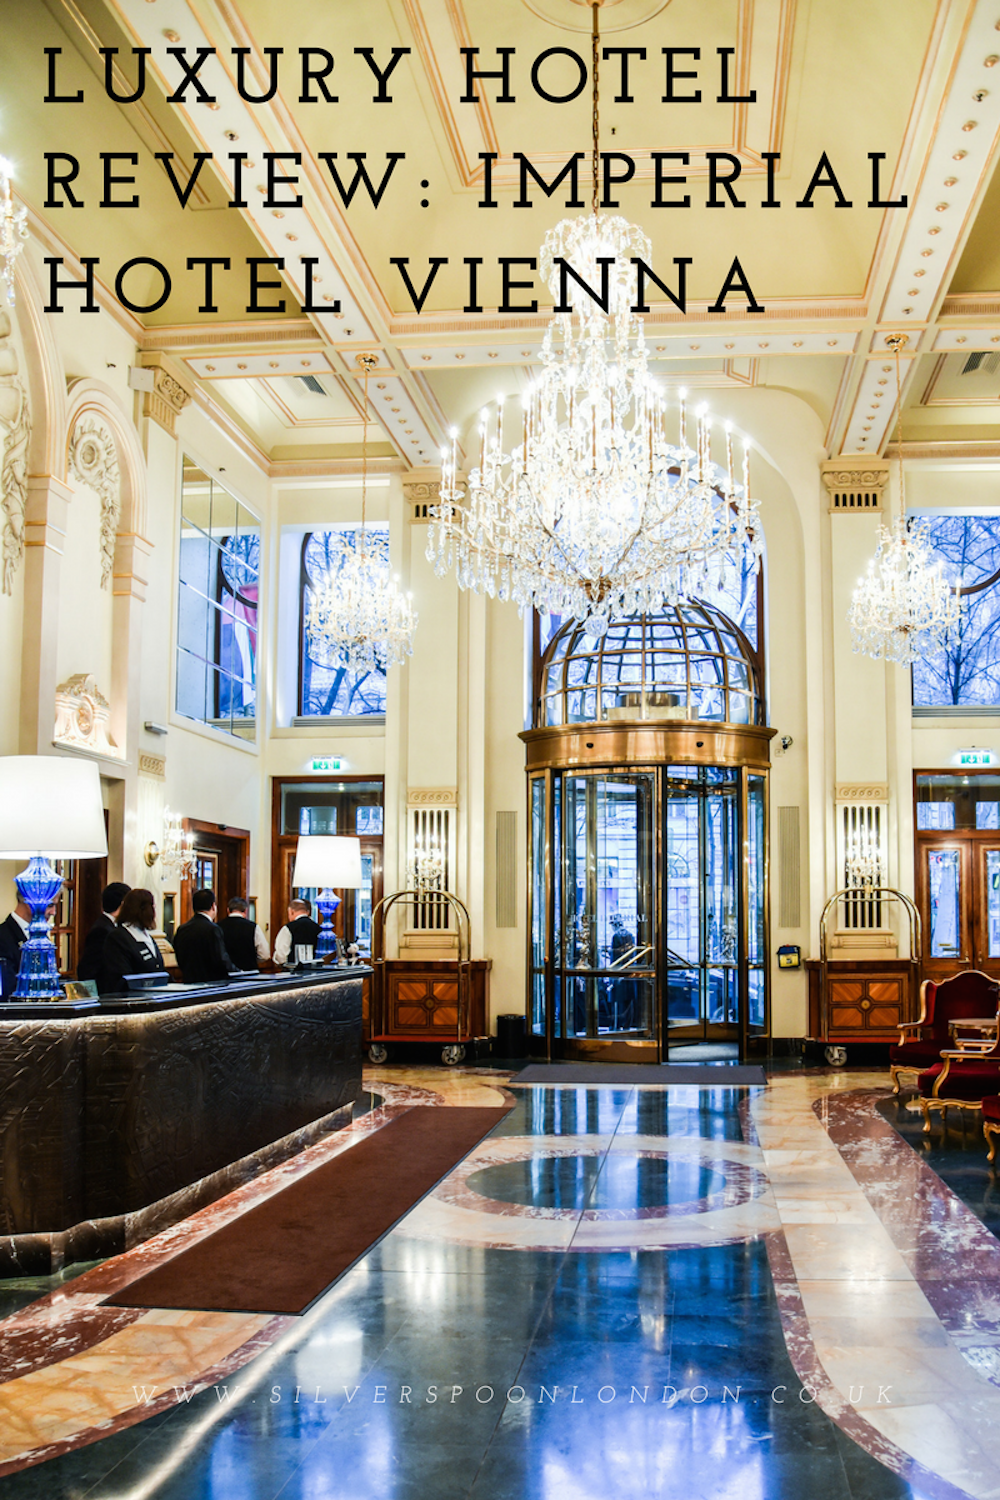 Luxury Hotel Review Imperial Hotel Vienna Silverspoon London